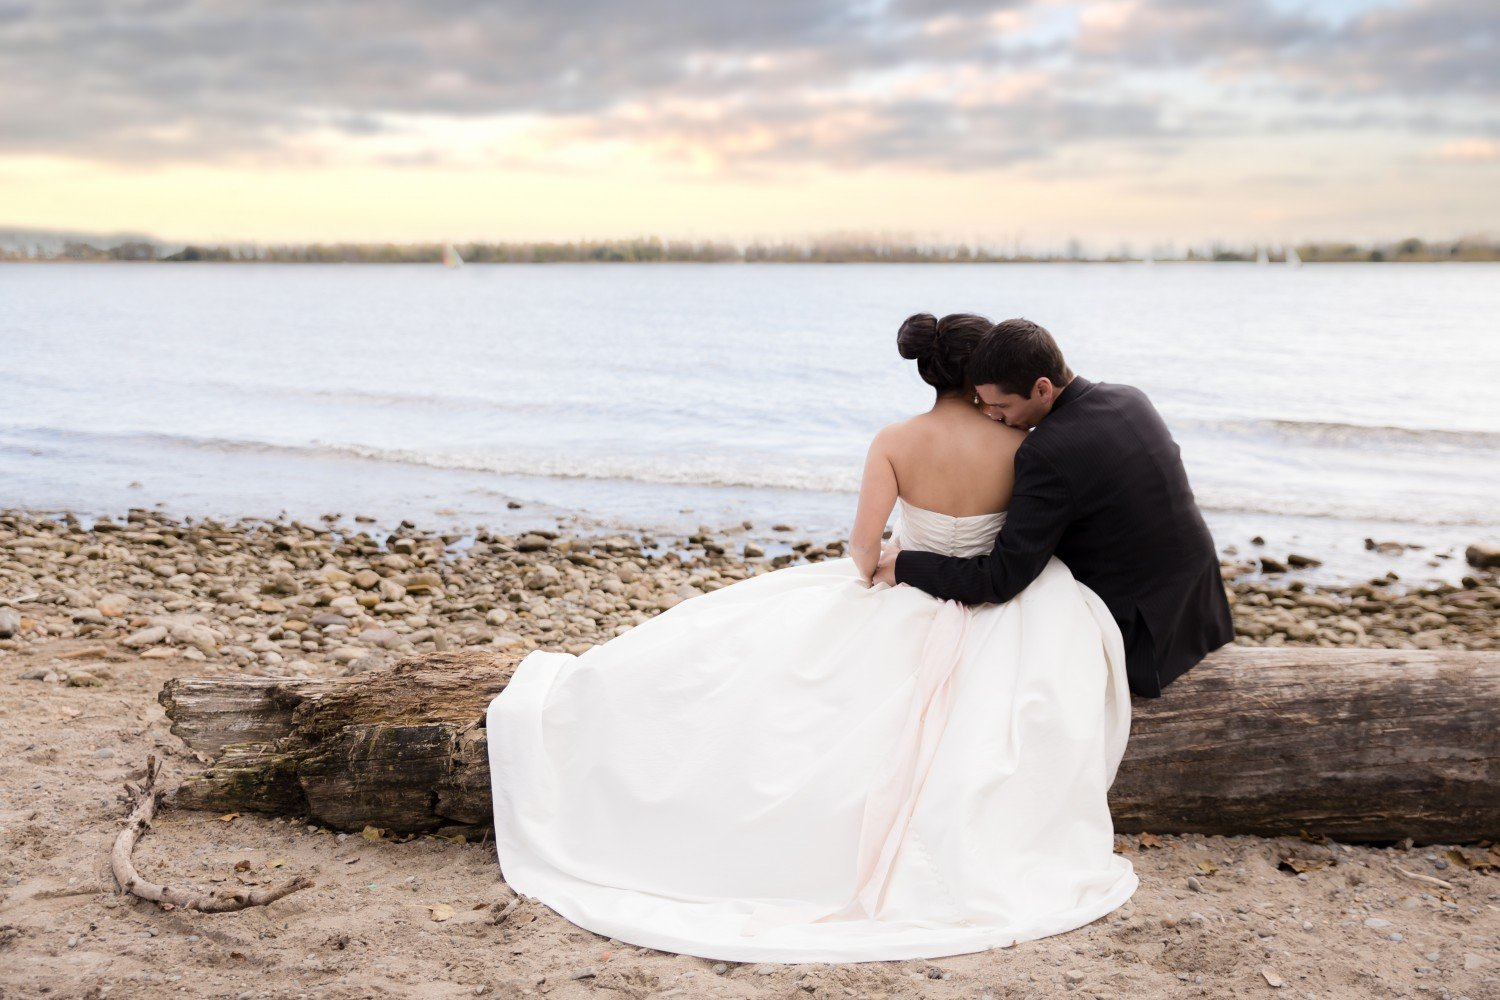 Luke & Tiffany Cherry Beach Cherry Sunset Toronto Bridal Shoot Photographer